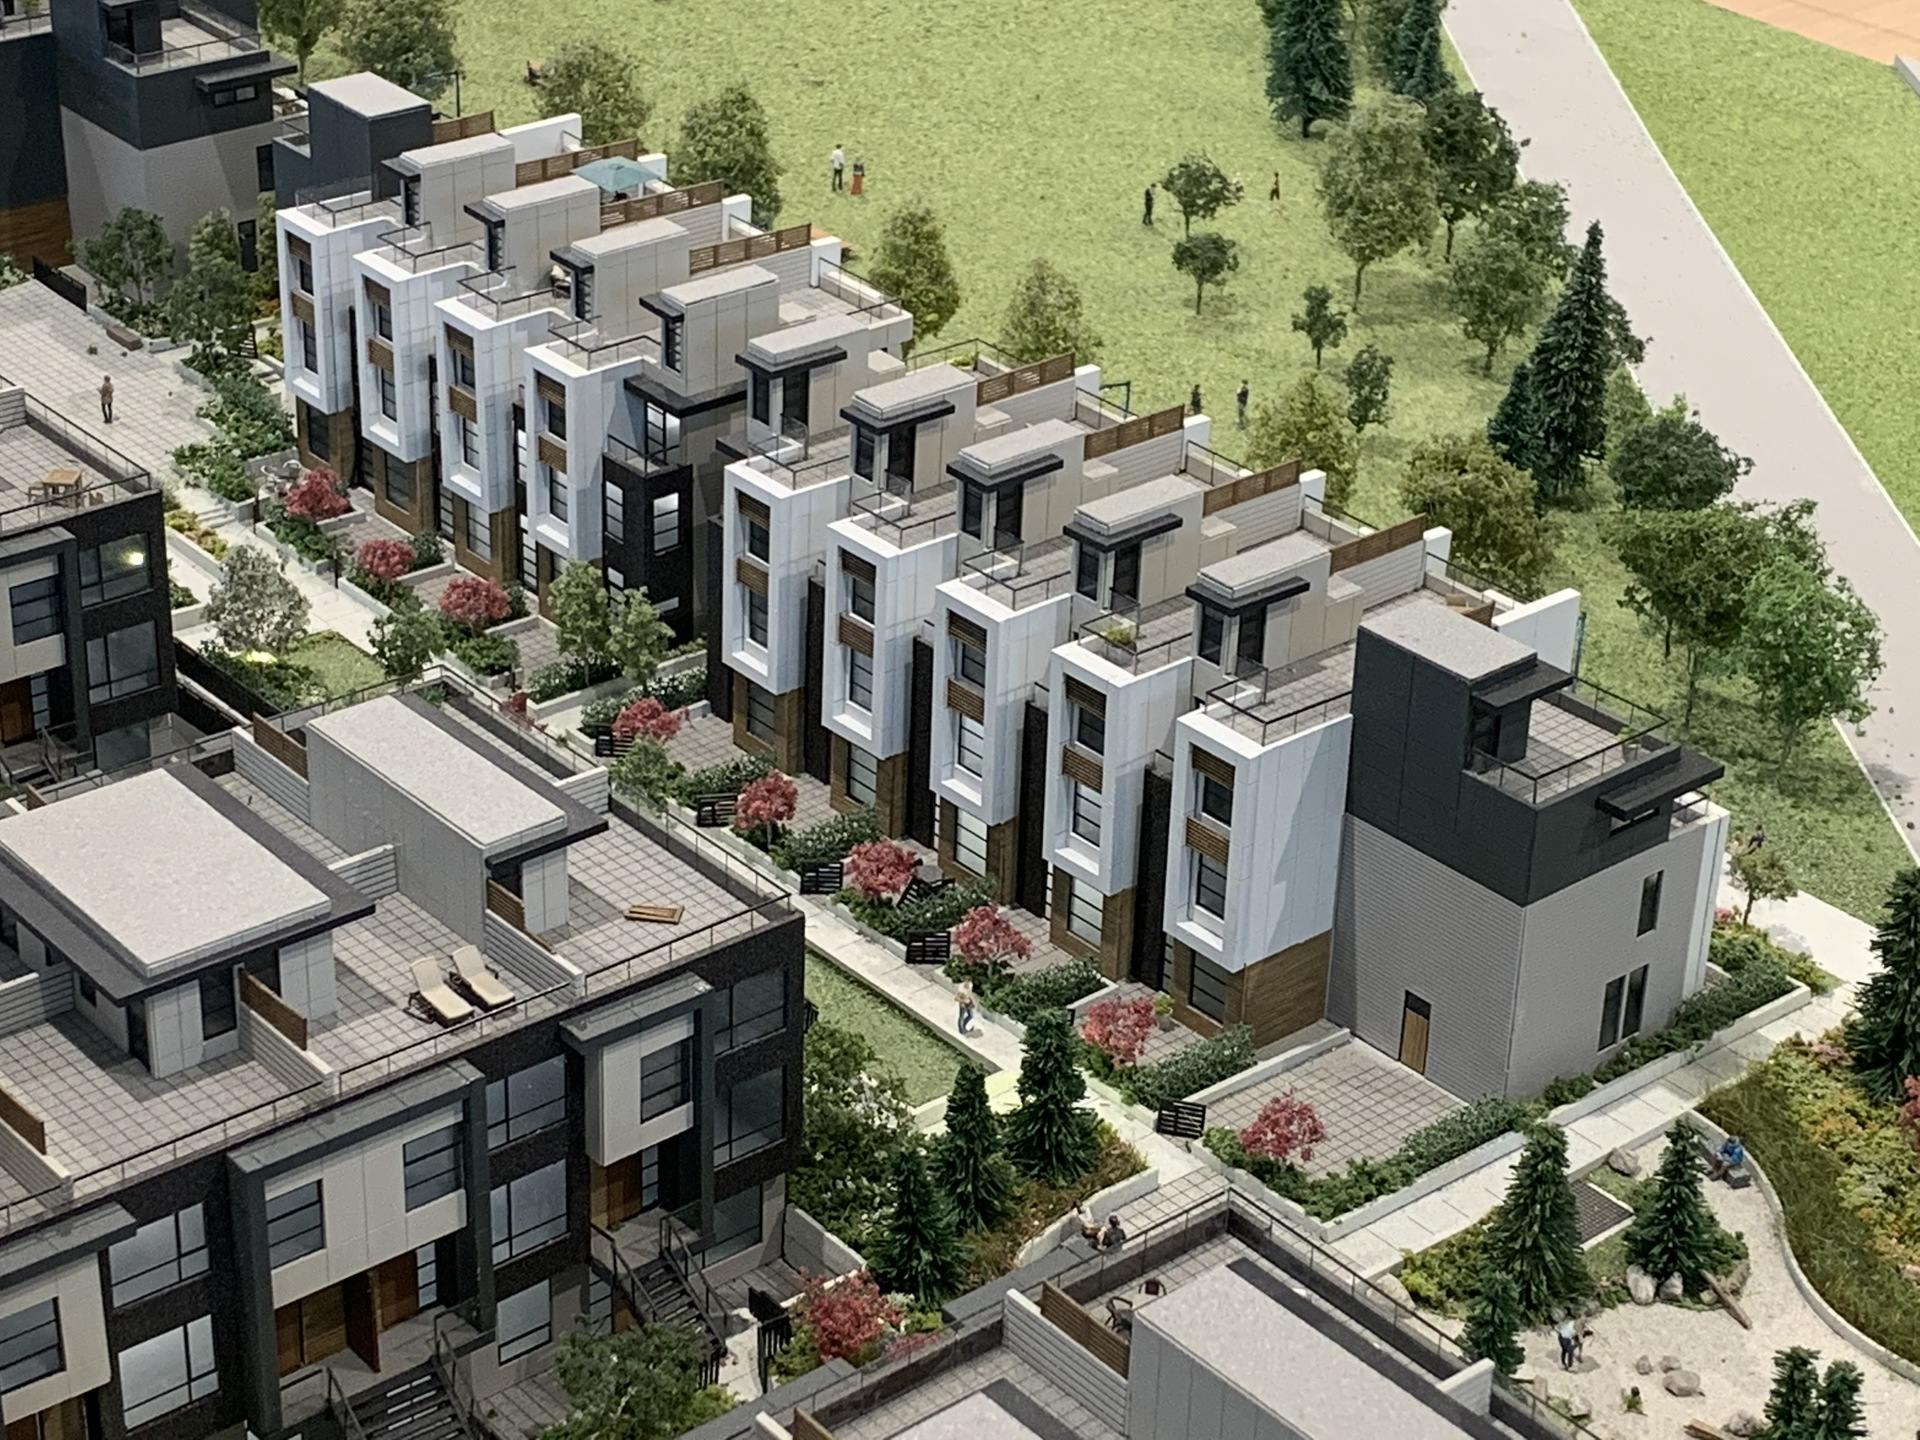 Kin - Parkside homes at The Kin Collection (7470 Buller Avenue, Metrotown, Burnaby South)